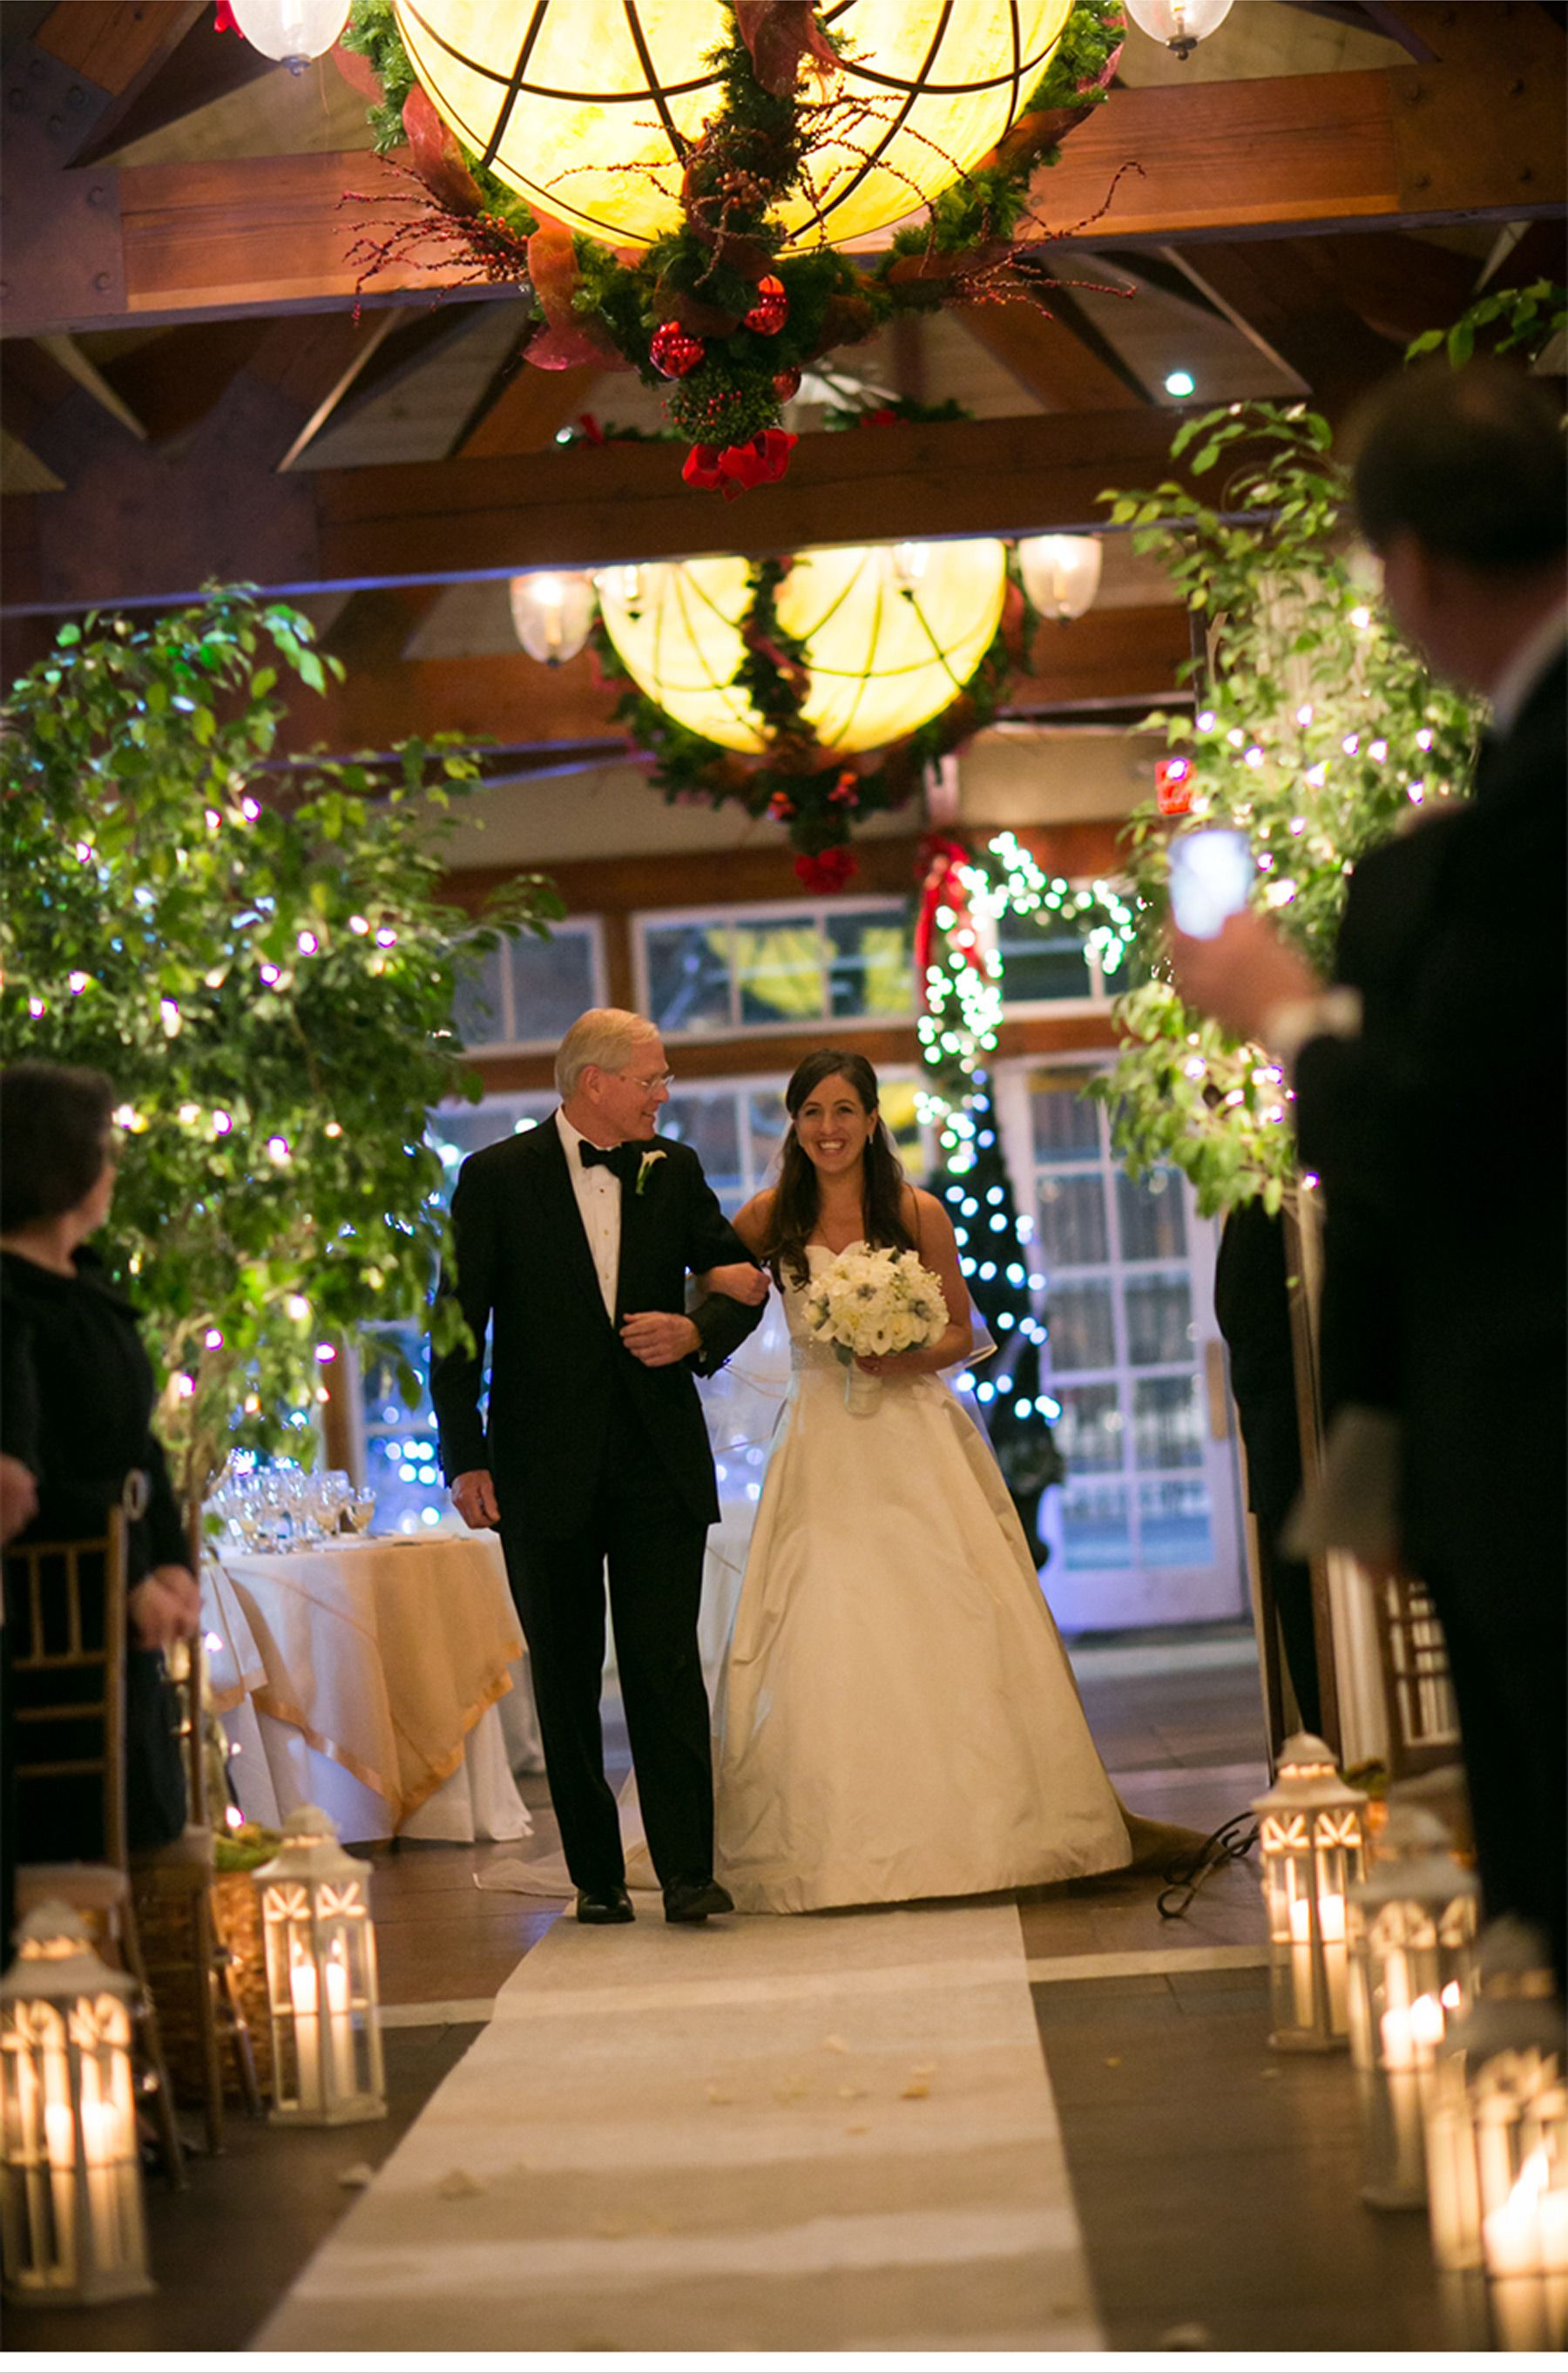 Winter Wedding At The Loeb Boathouse Central Park Be Inspired By Carter Brad S Snowy